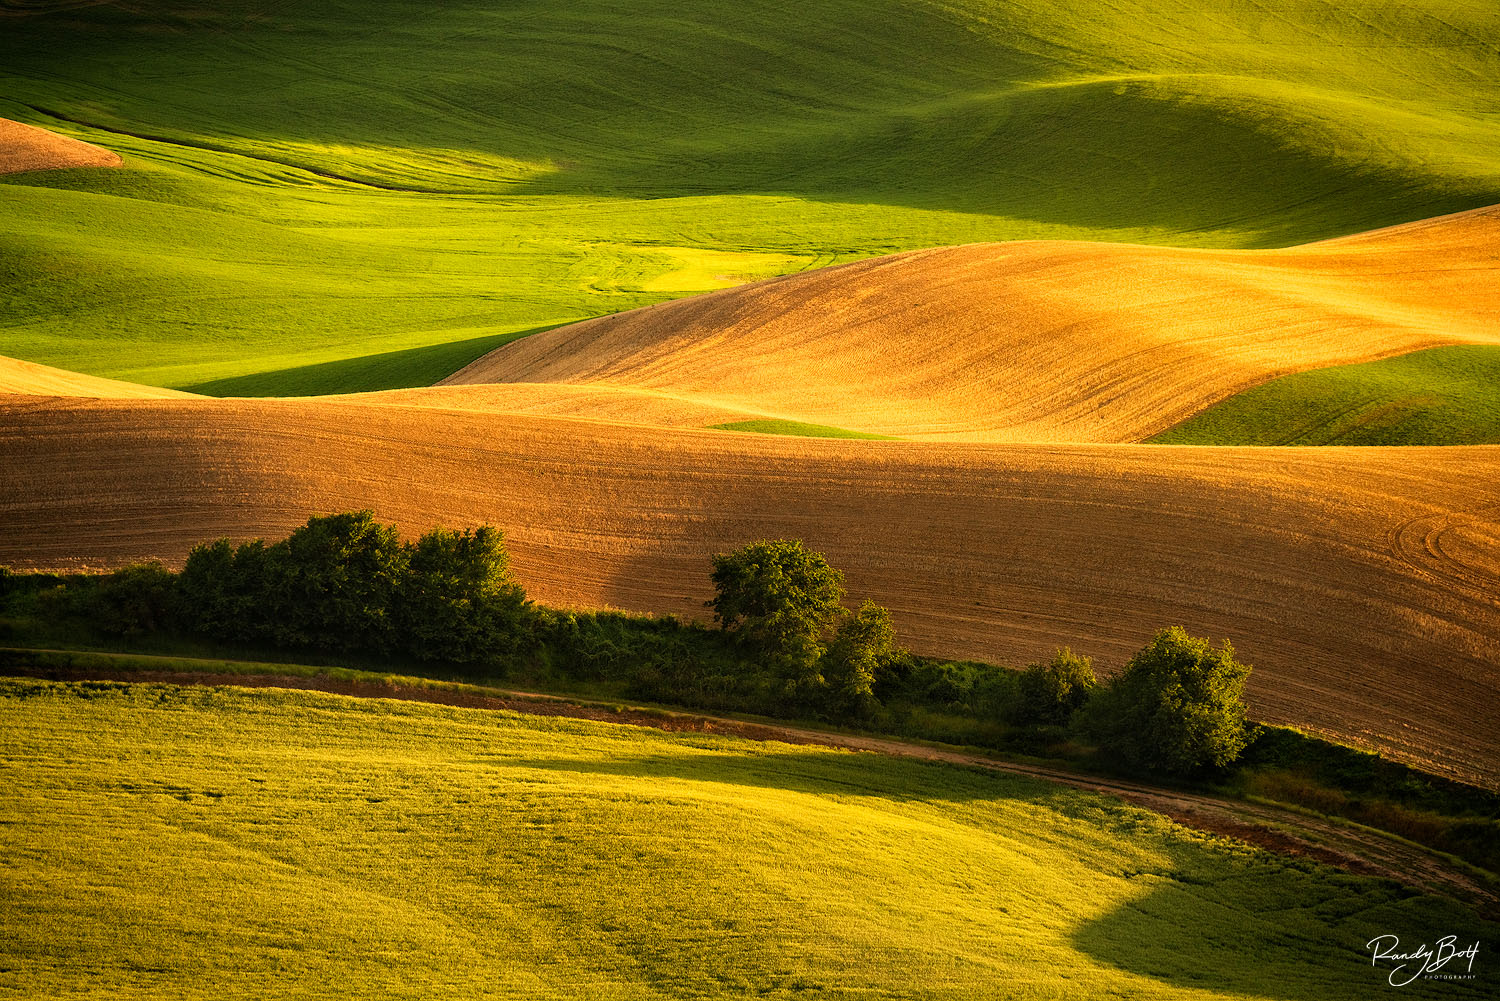 brown and green fields in the Palouse region of Washington State